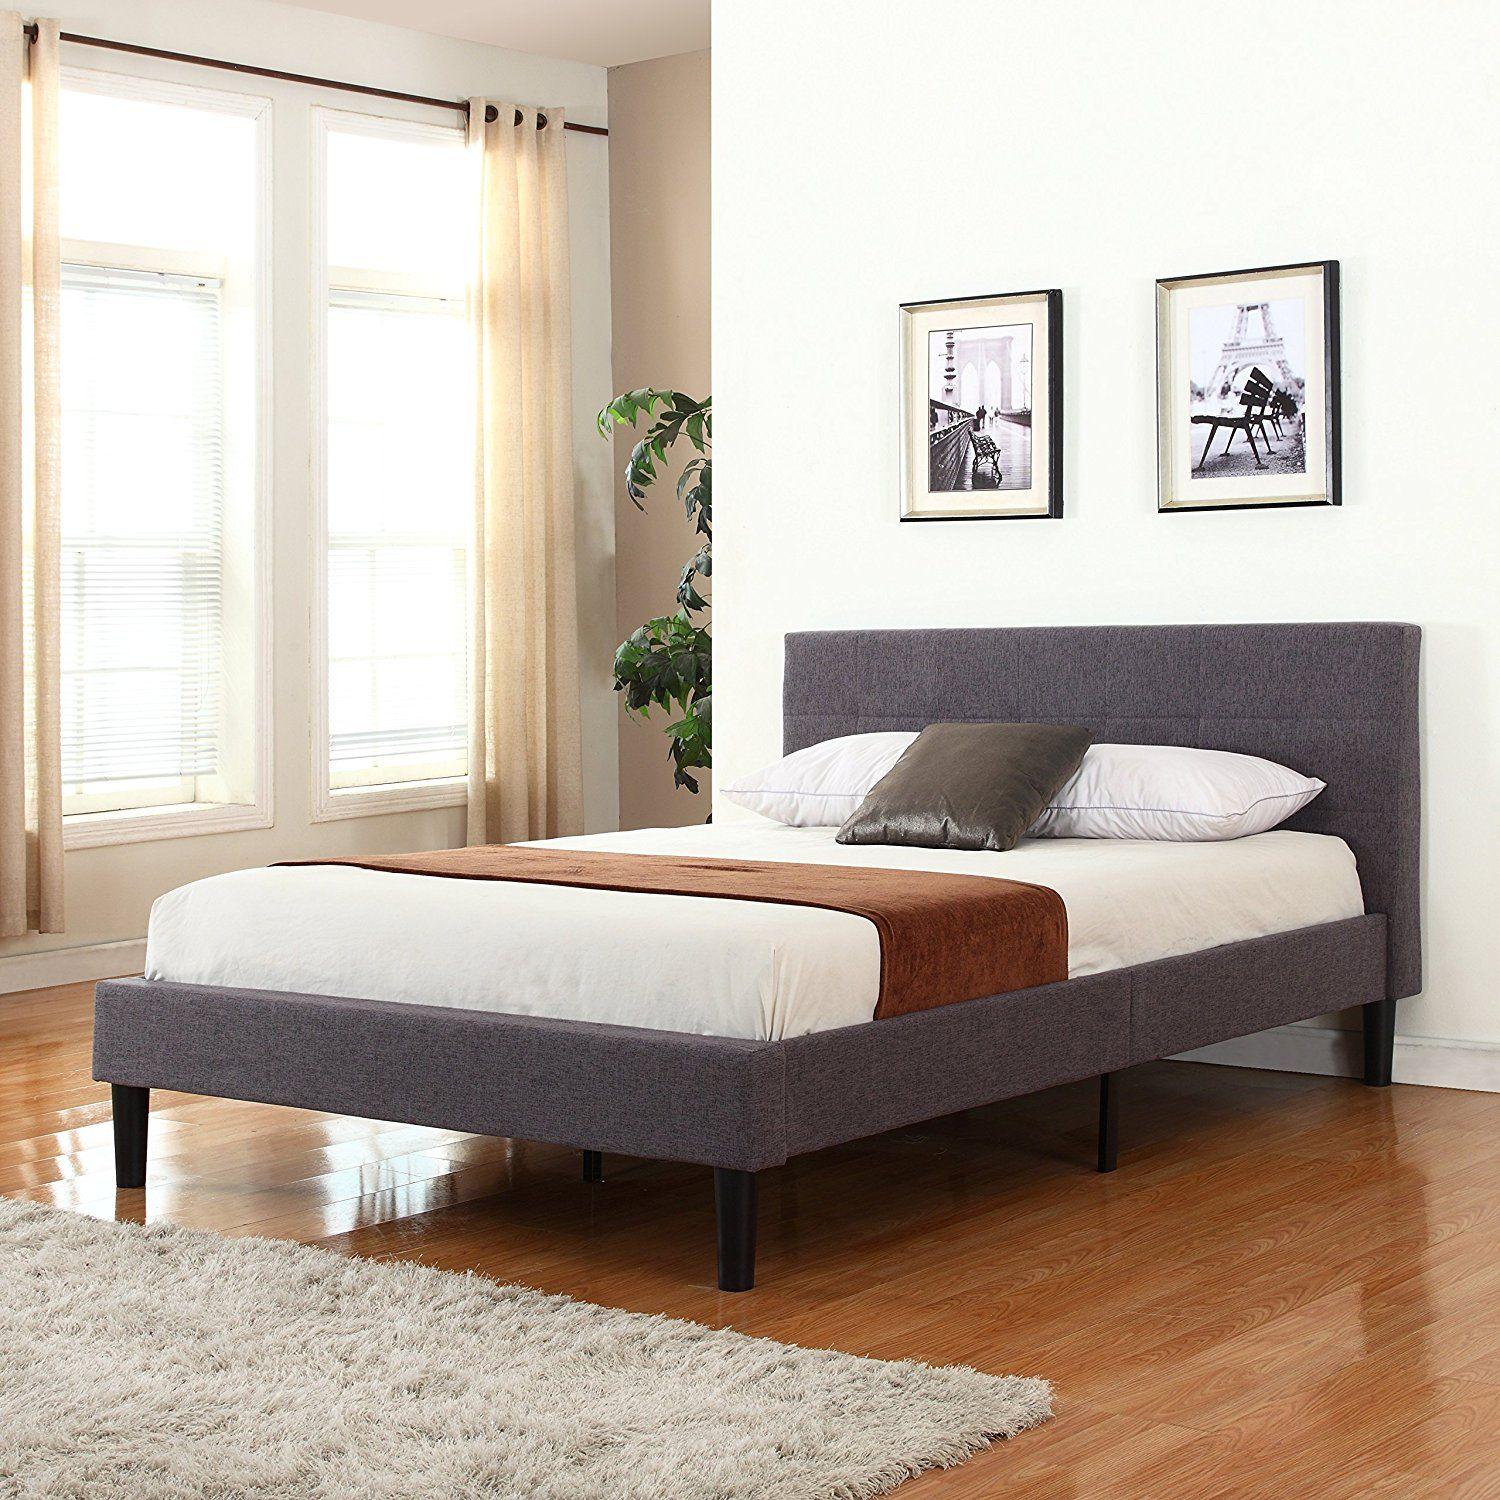 Amazoncom Divano Roma Furniture Tufted Grey Platform Queen Bed